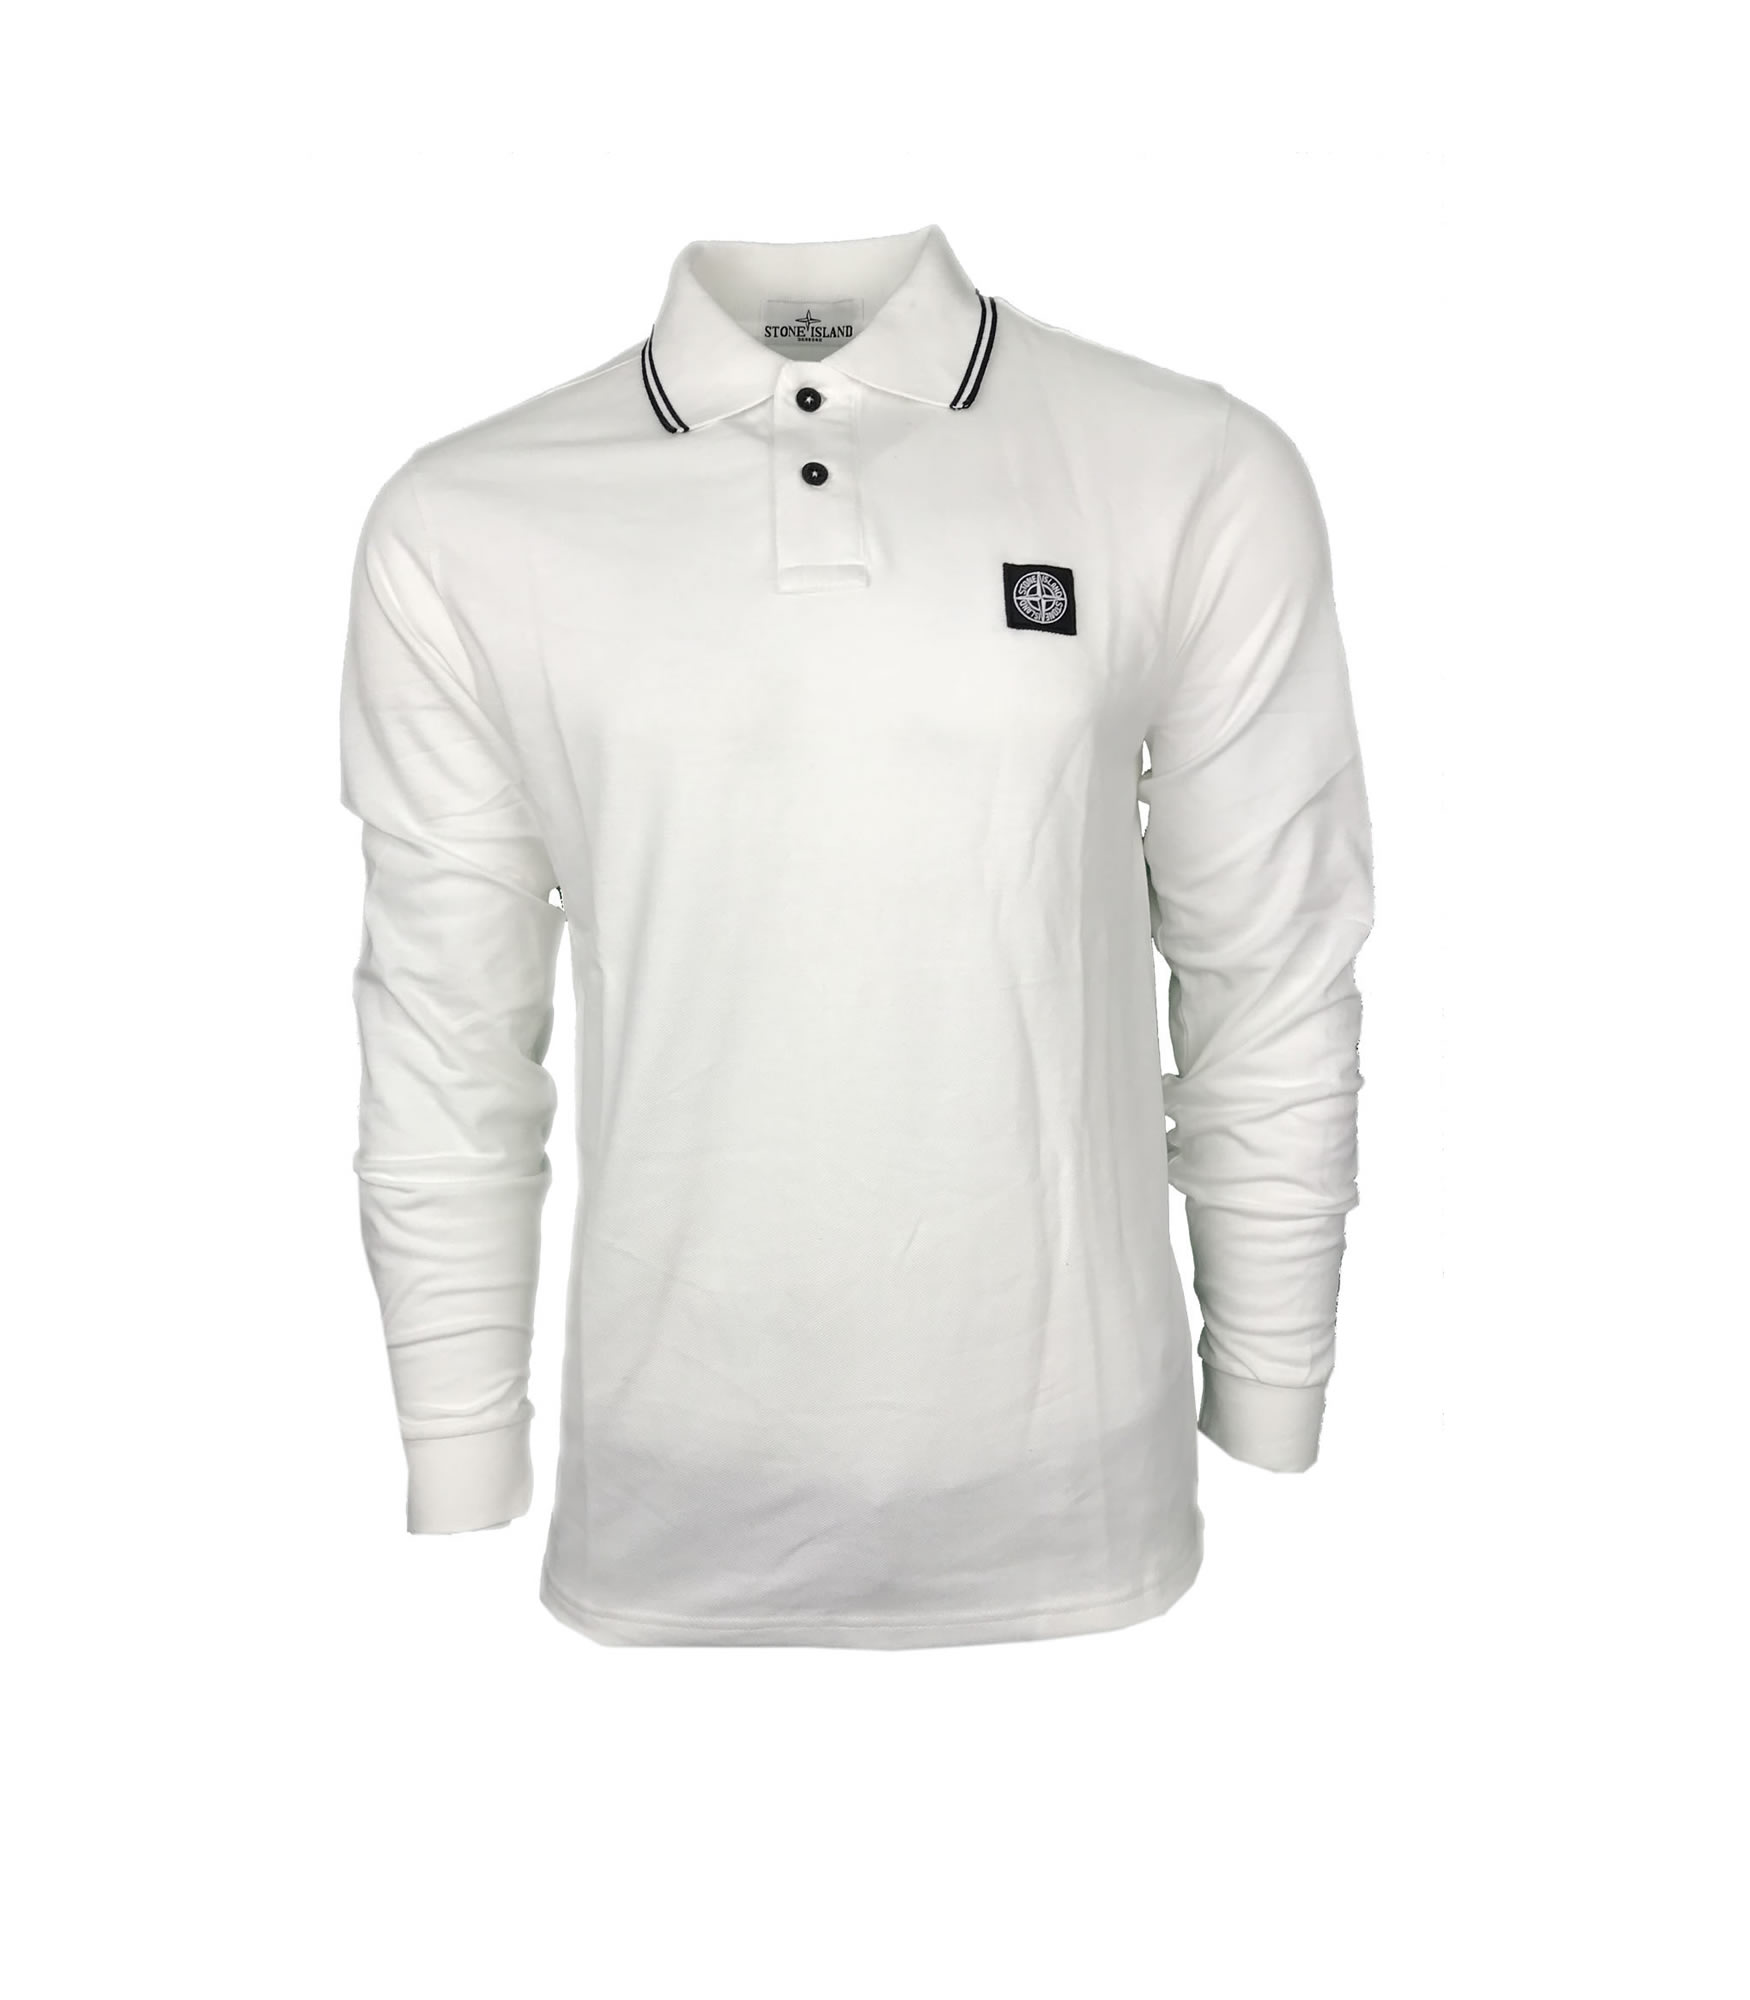 a51eb7ab Stone Island Long Sleeve Polo Shirt. Regular Fit in White | INTOTO7 ...